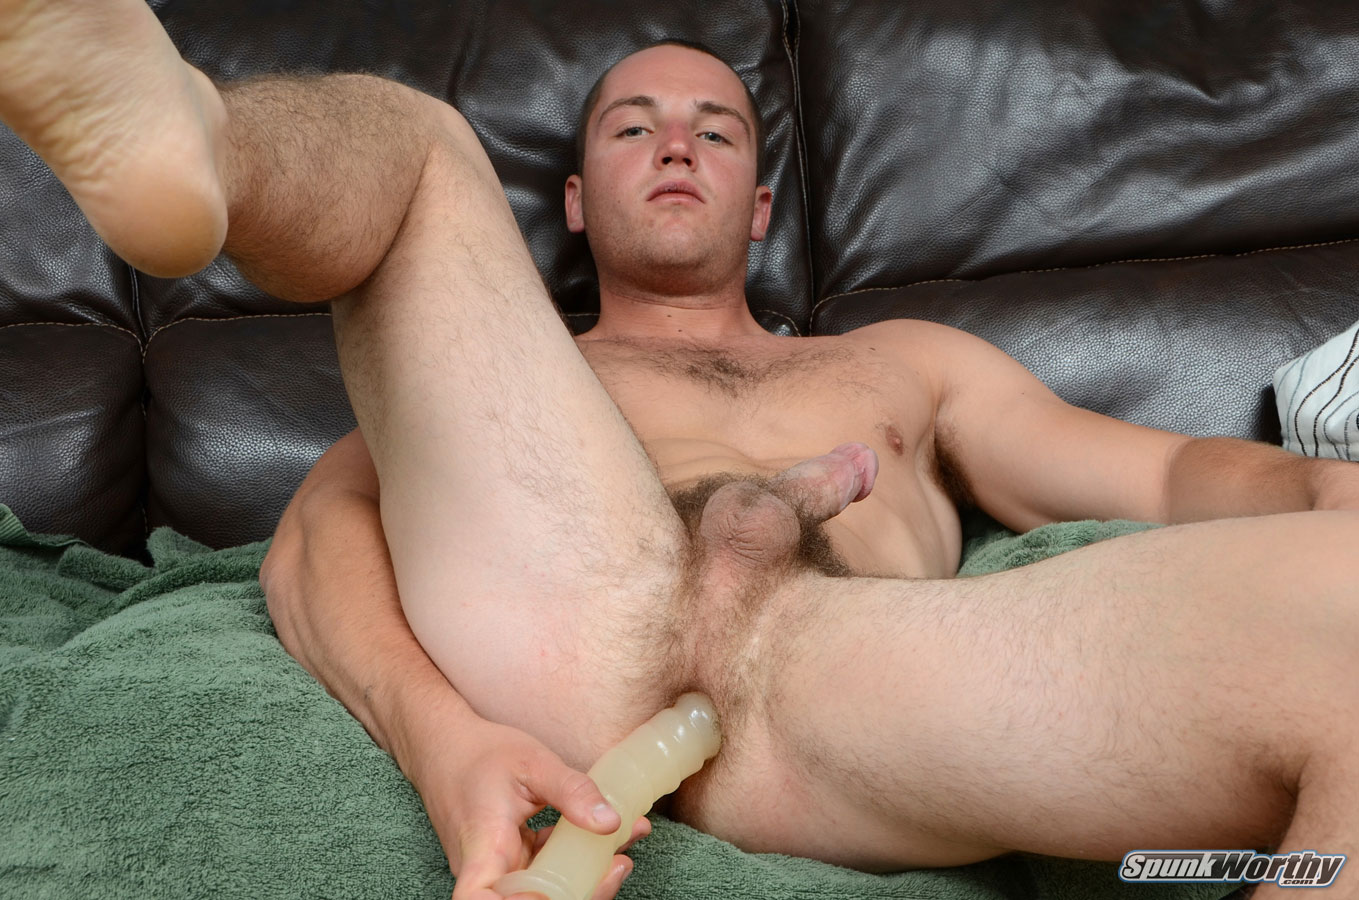 SpunkWorthy Dean Straight Marine Uses A Dildo On Hairy Ass Amateur Gay Porn 05 Ripped Marine Fucks His Straight Hairy Ass With A Dildo